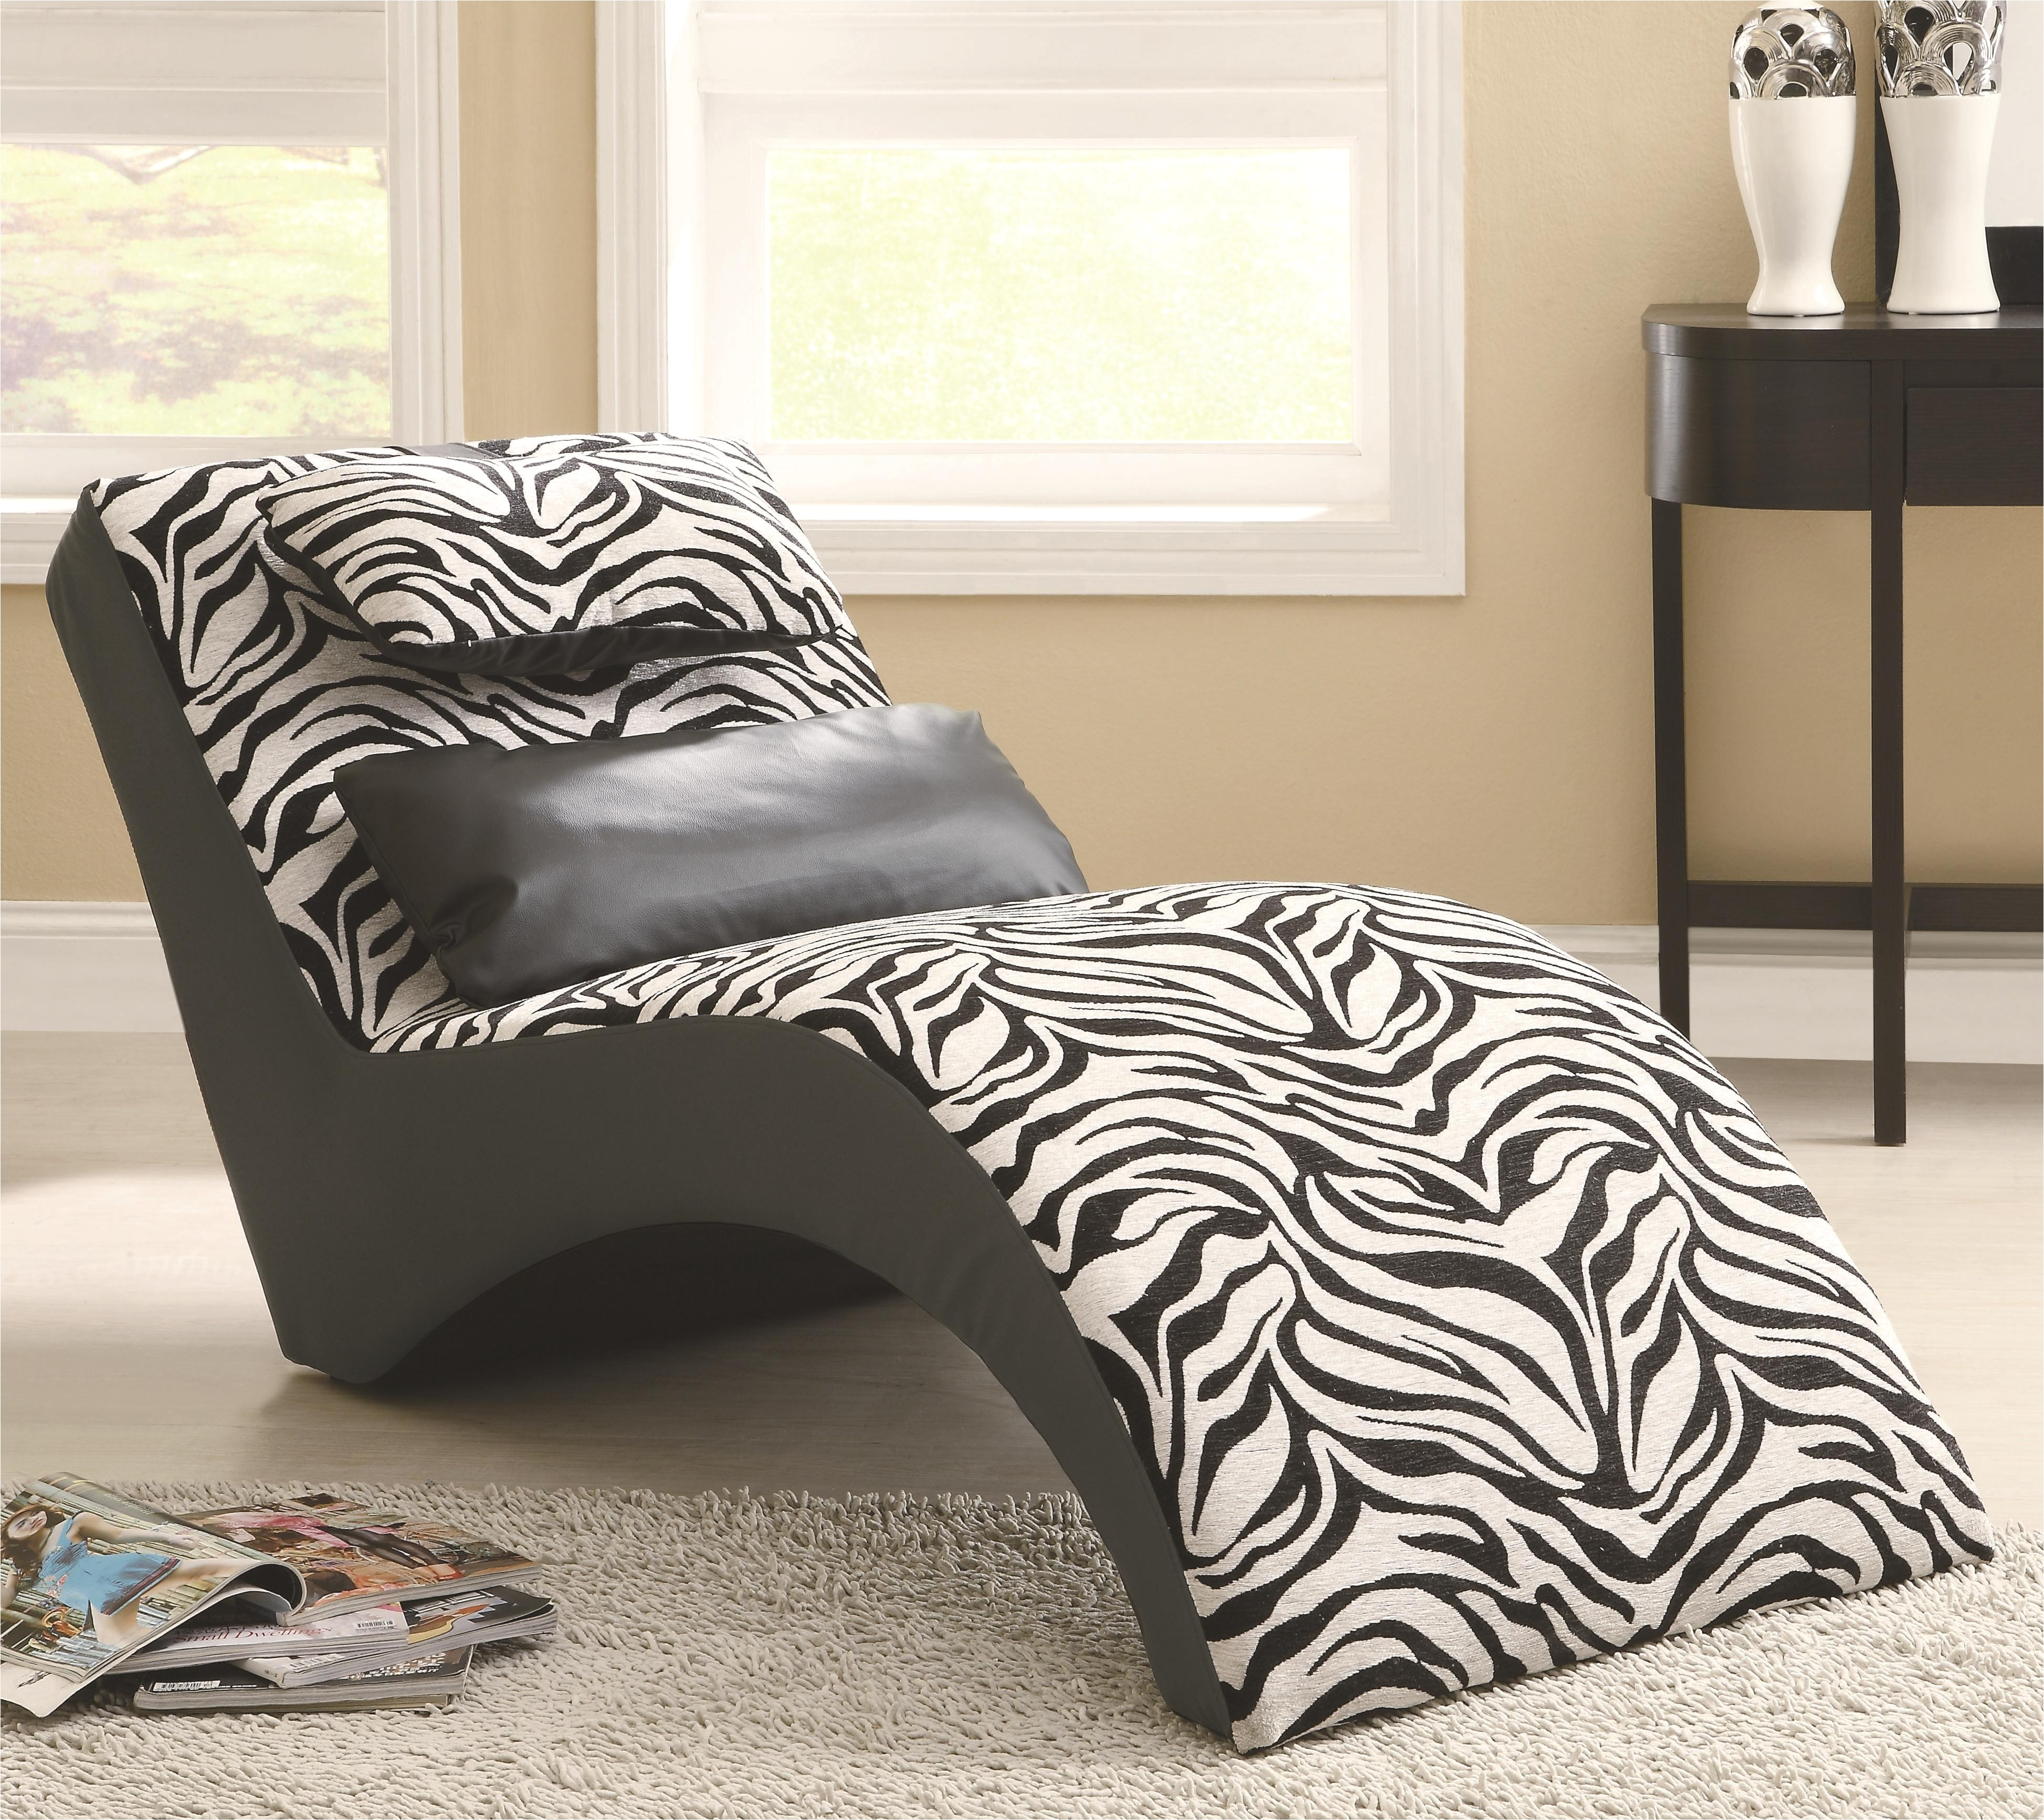 zebra print bedroom furniture contemporary bedroom leopard print bedroom chairs formidable chaise lounge to zebra